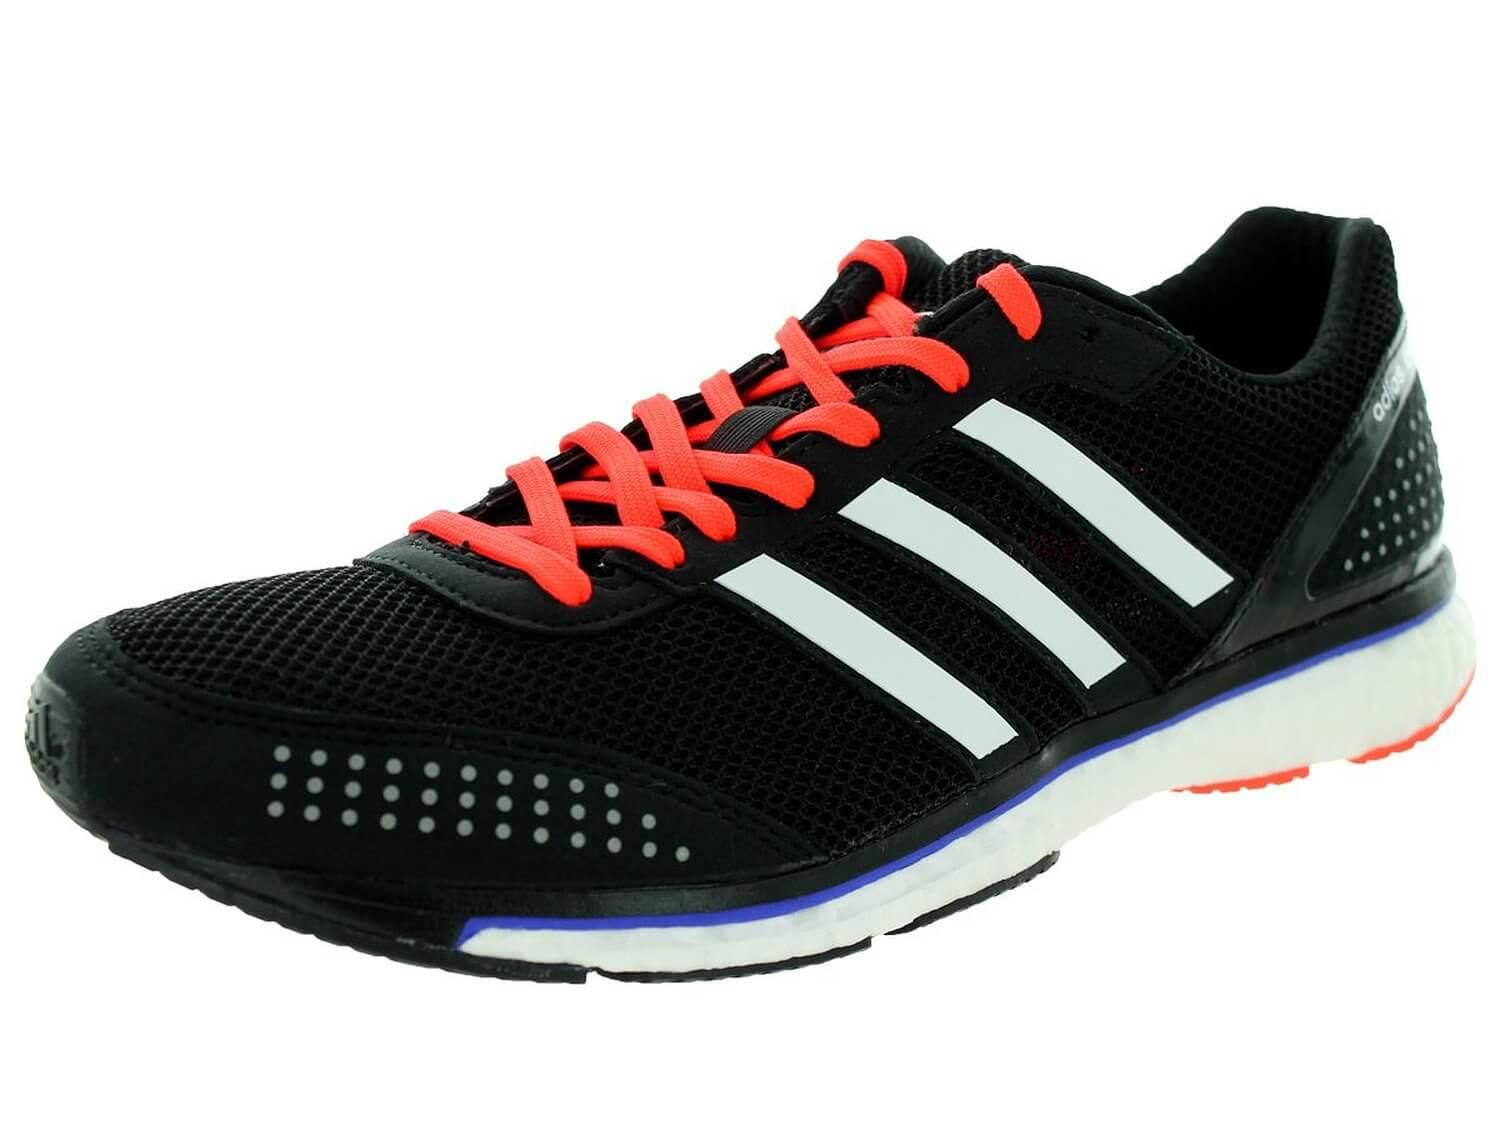 Adidas Adizero Feather Prime Womens Running Shoes Review